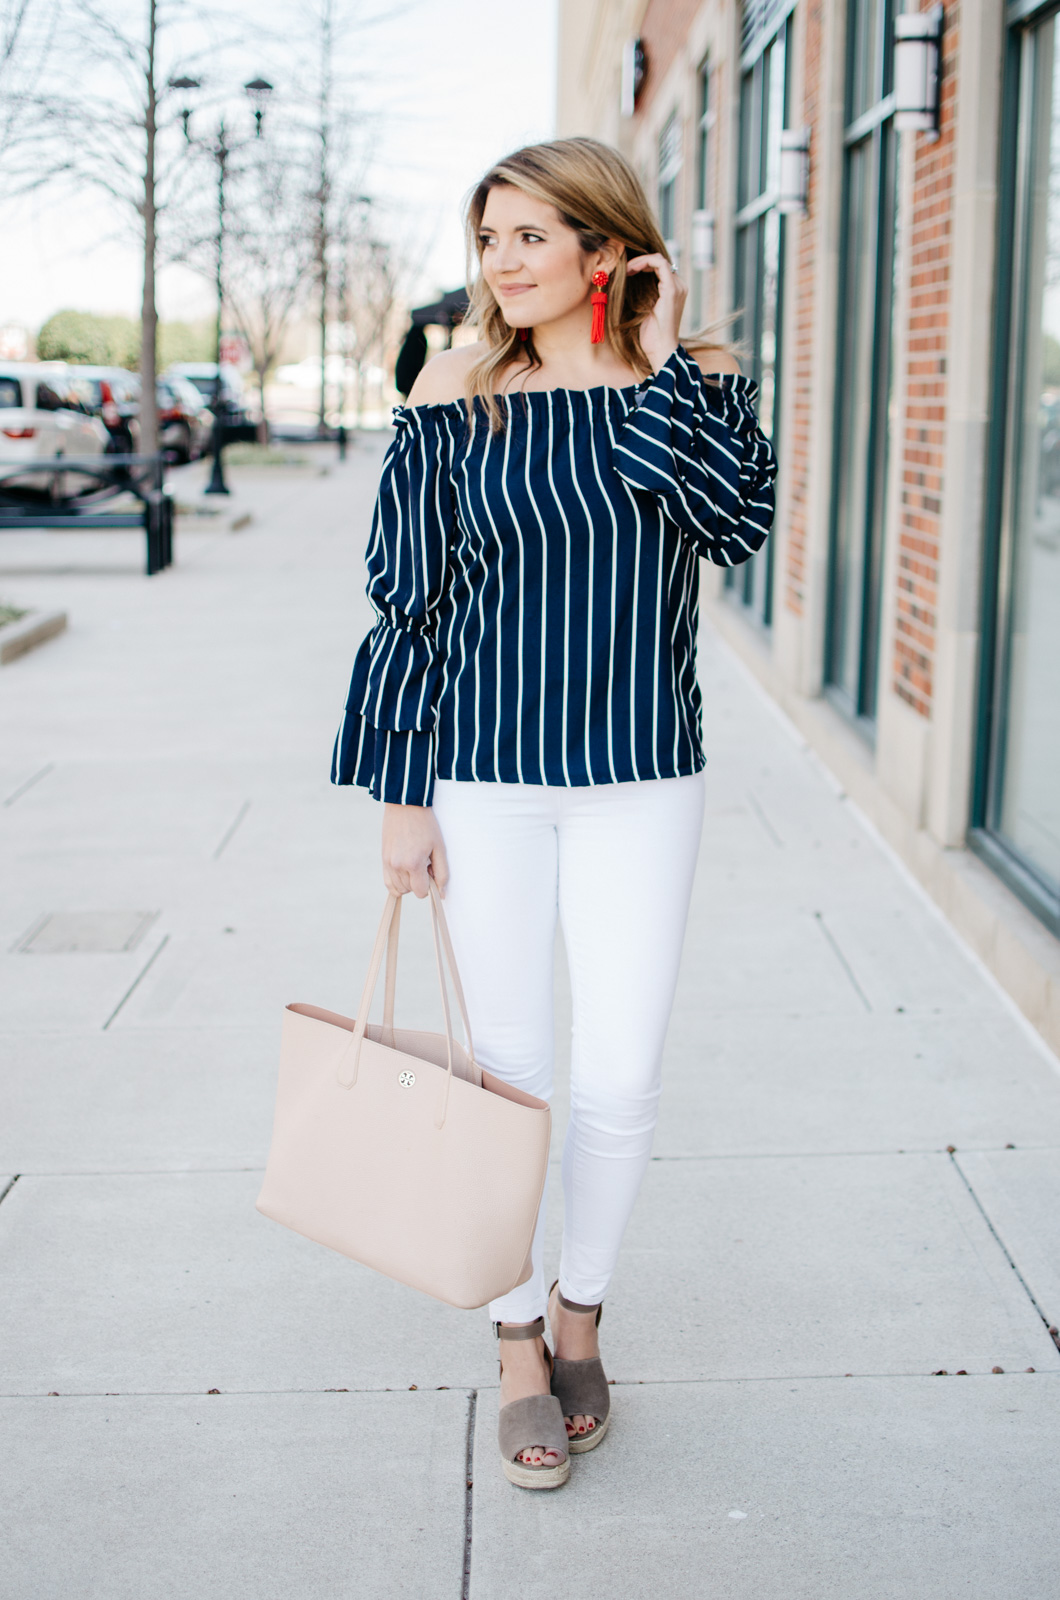 Stripe Off Shoulder Bell Sleeve Top - trendy spring outfit. Click through for more cute Spring outfits or to shop this look. www.bylaurenm.com